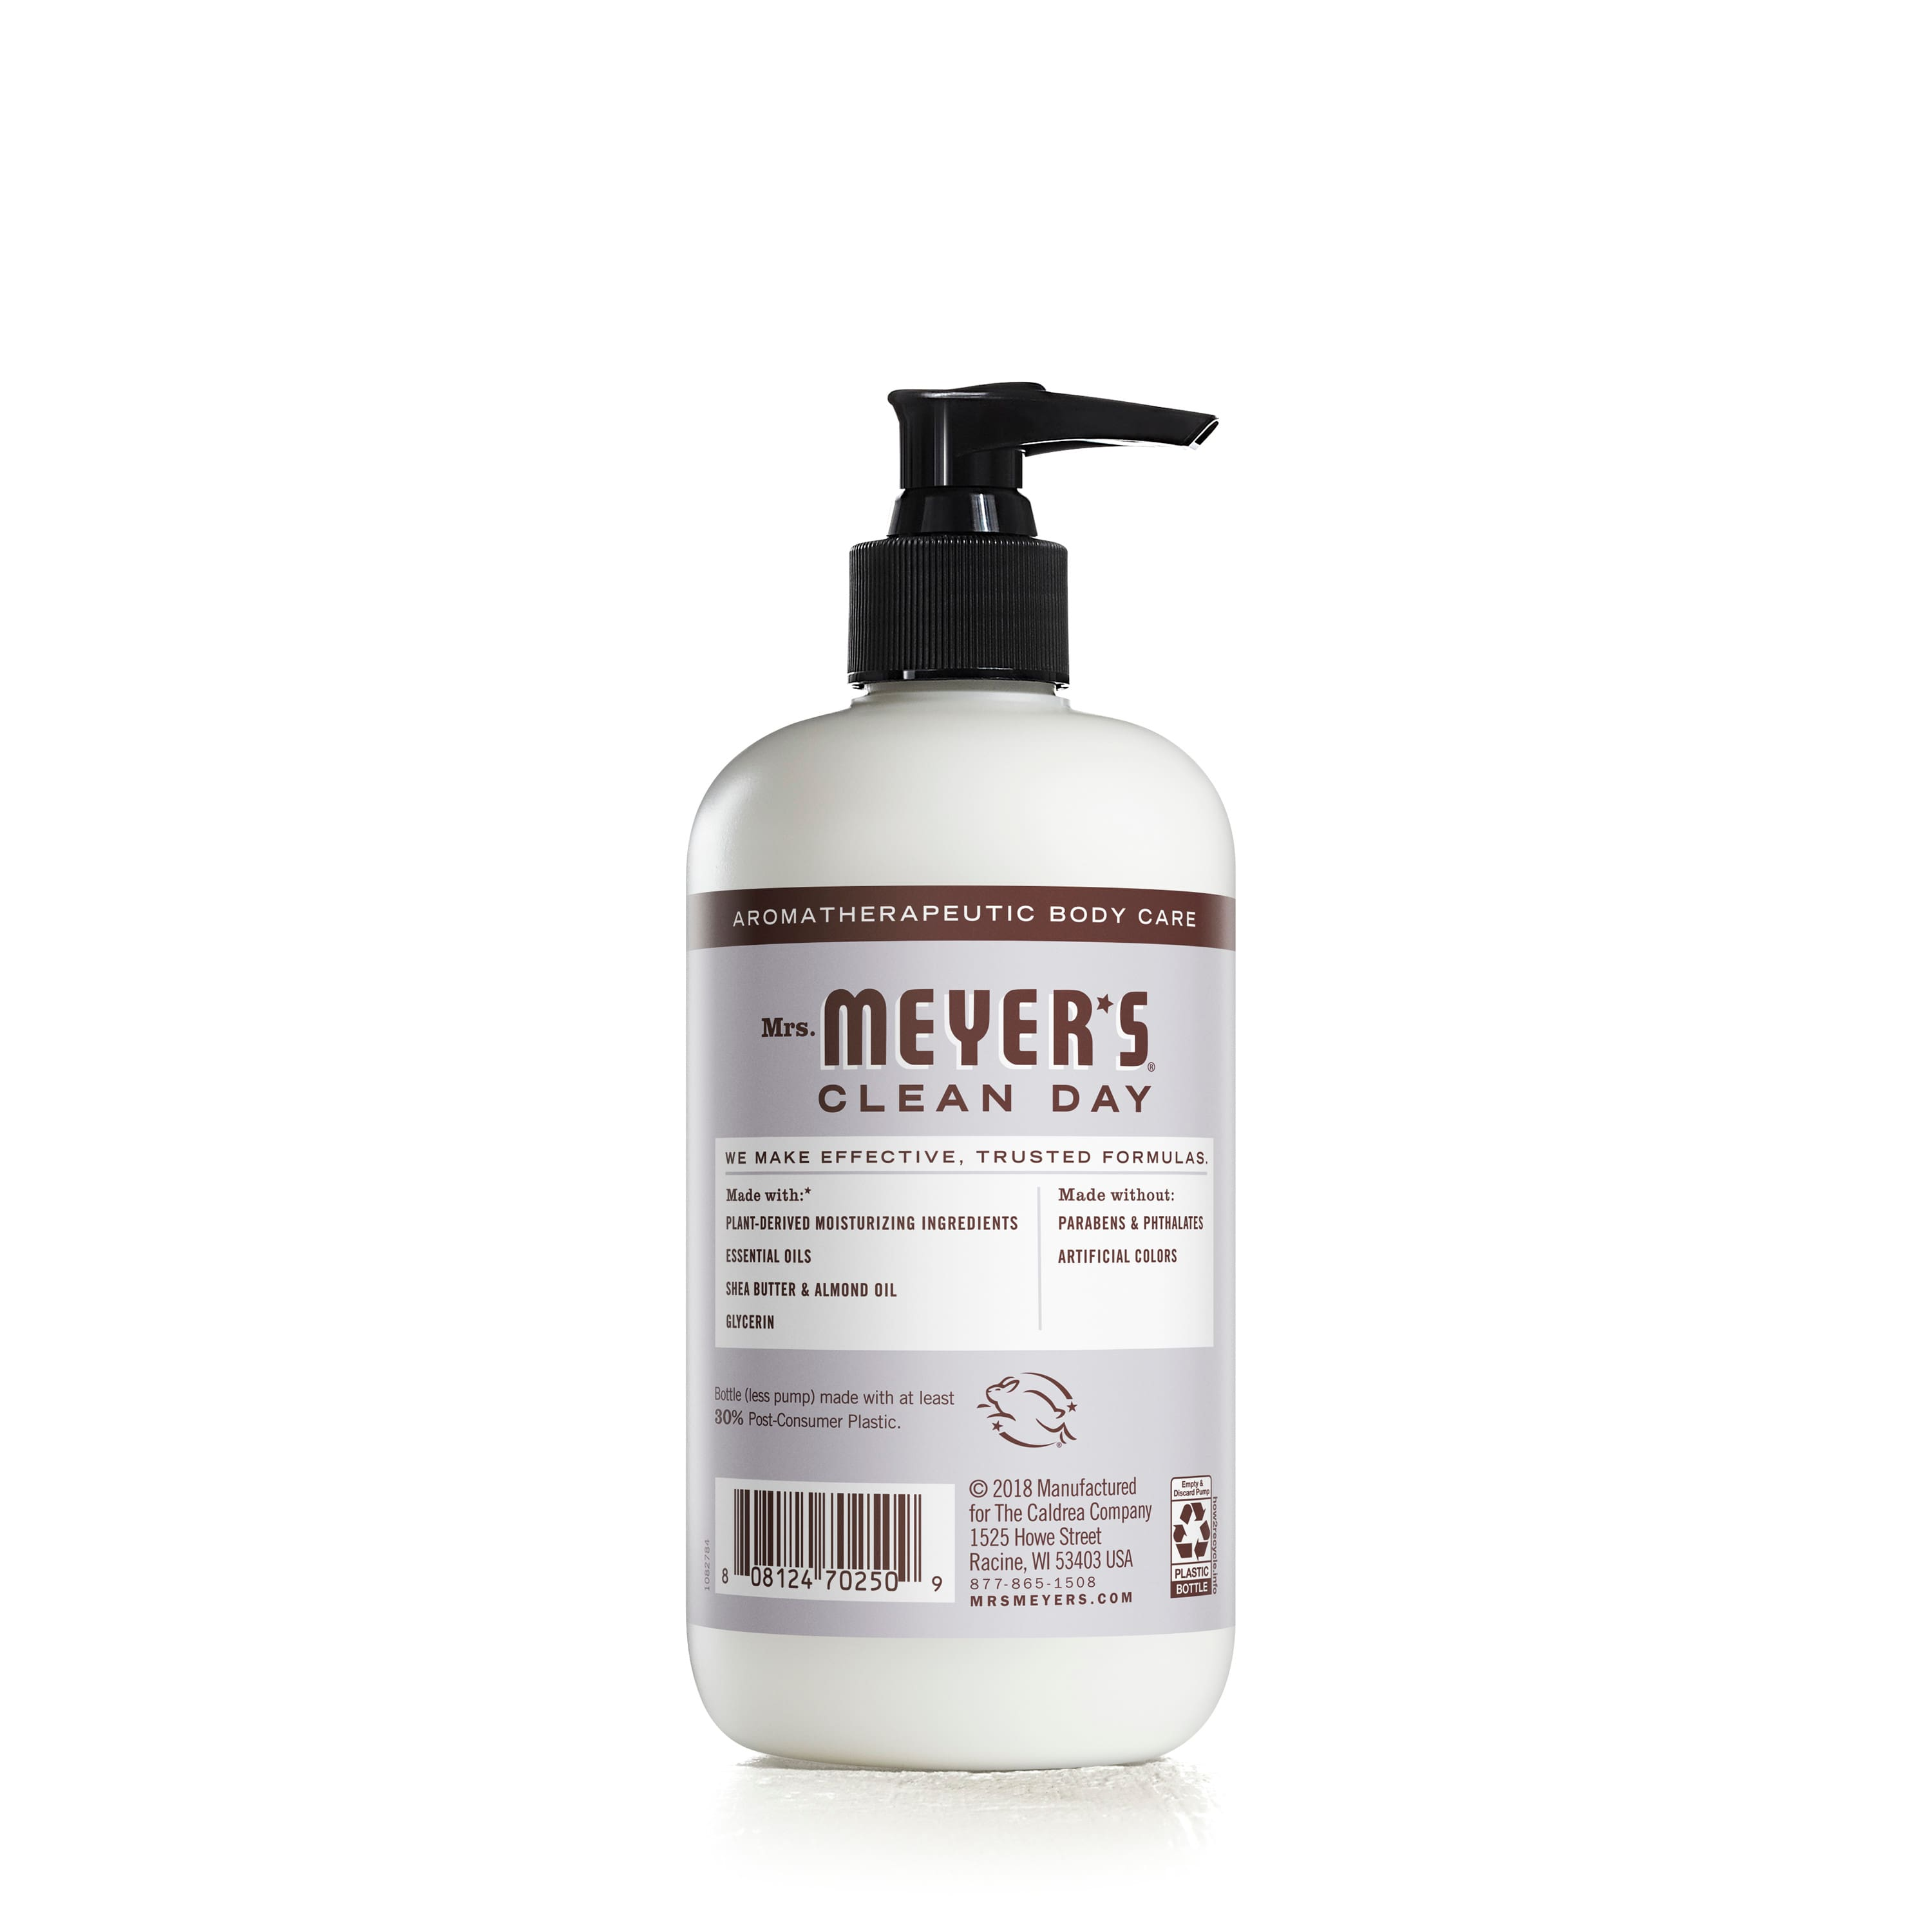 Mrs. Meyer's Clean Day Hand Lotion, Lavender Scent, 12 oz $2.50